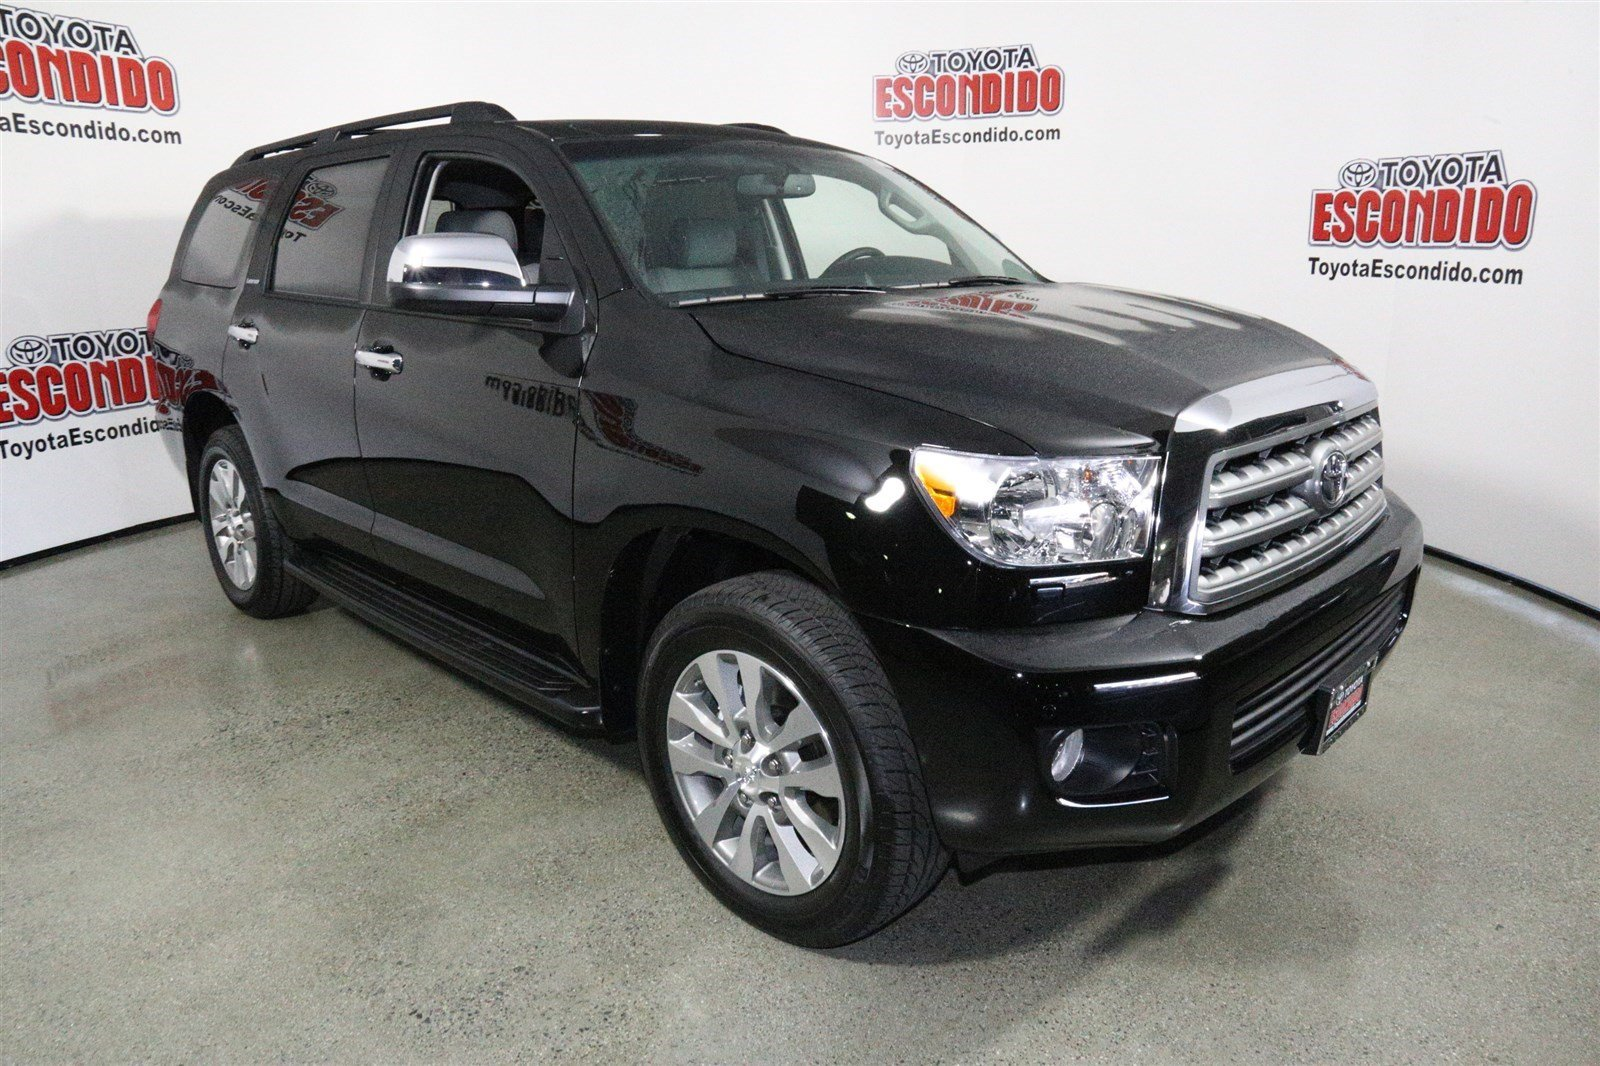 new 2017 toyota sequoia limited sport utility in escondido 1014504 toyota of escondido. Black Bedroom Furniture Sets. Home Design Ideas